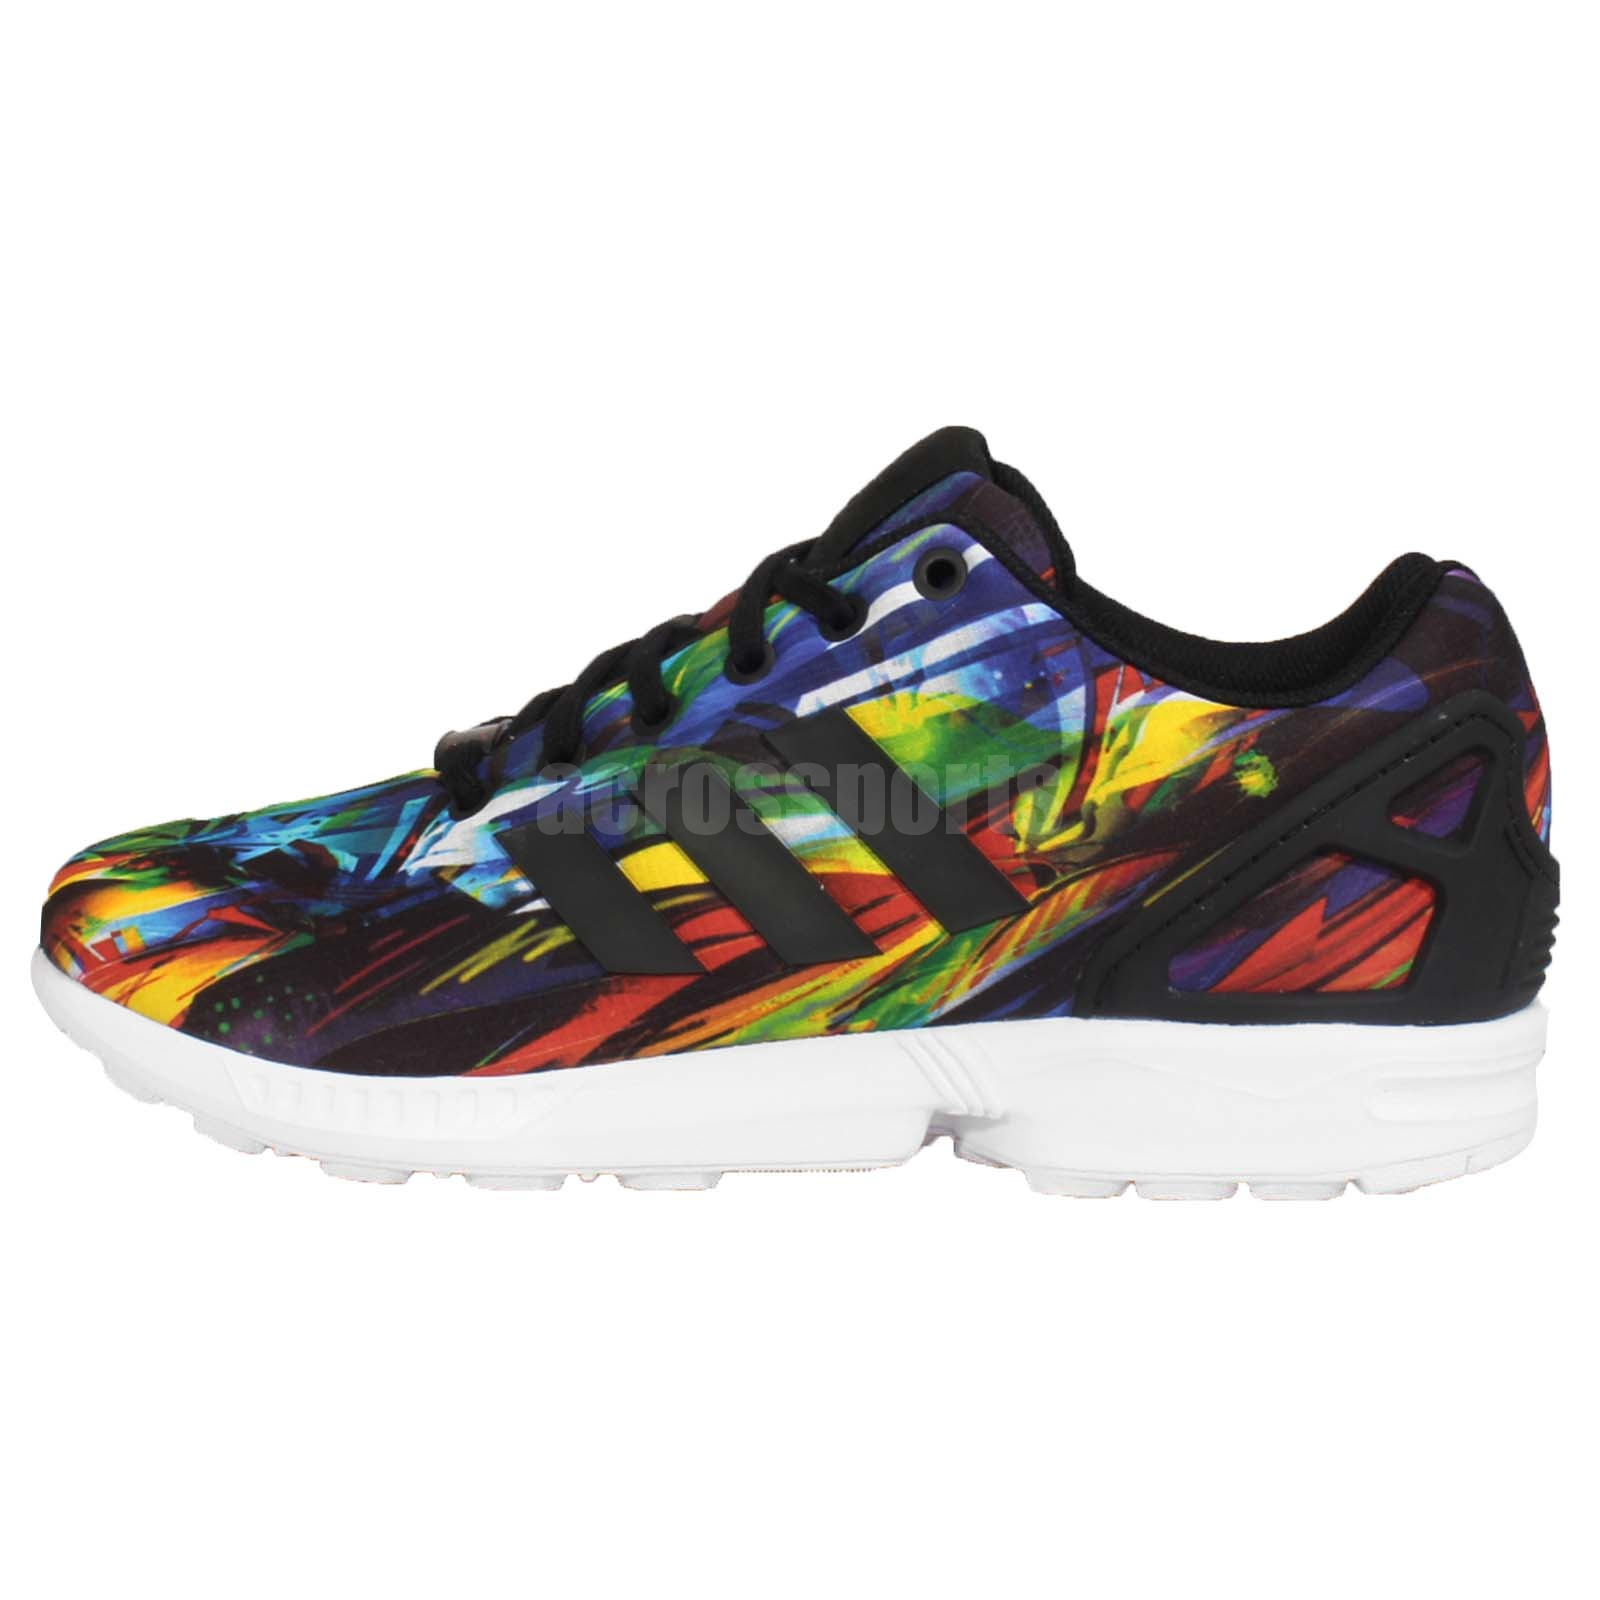 Rainbow Colored Adidas Shoes